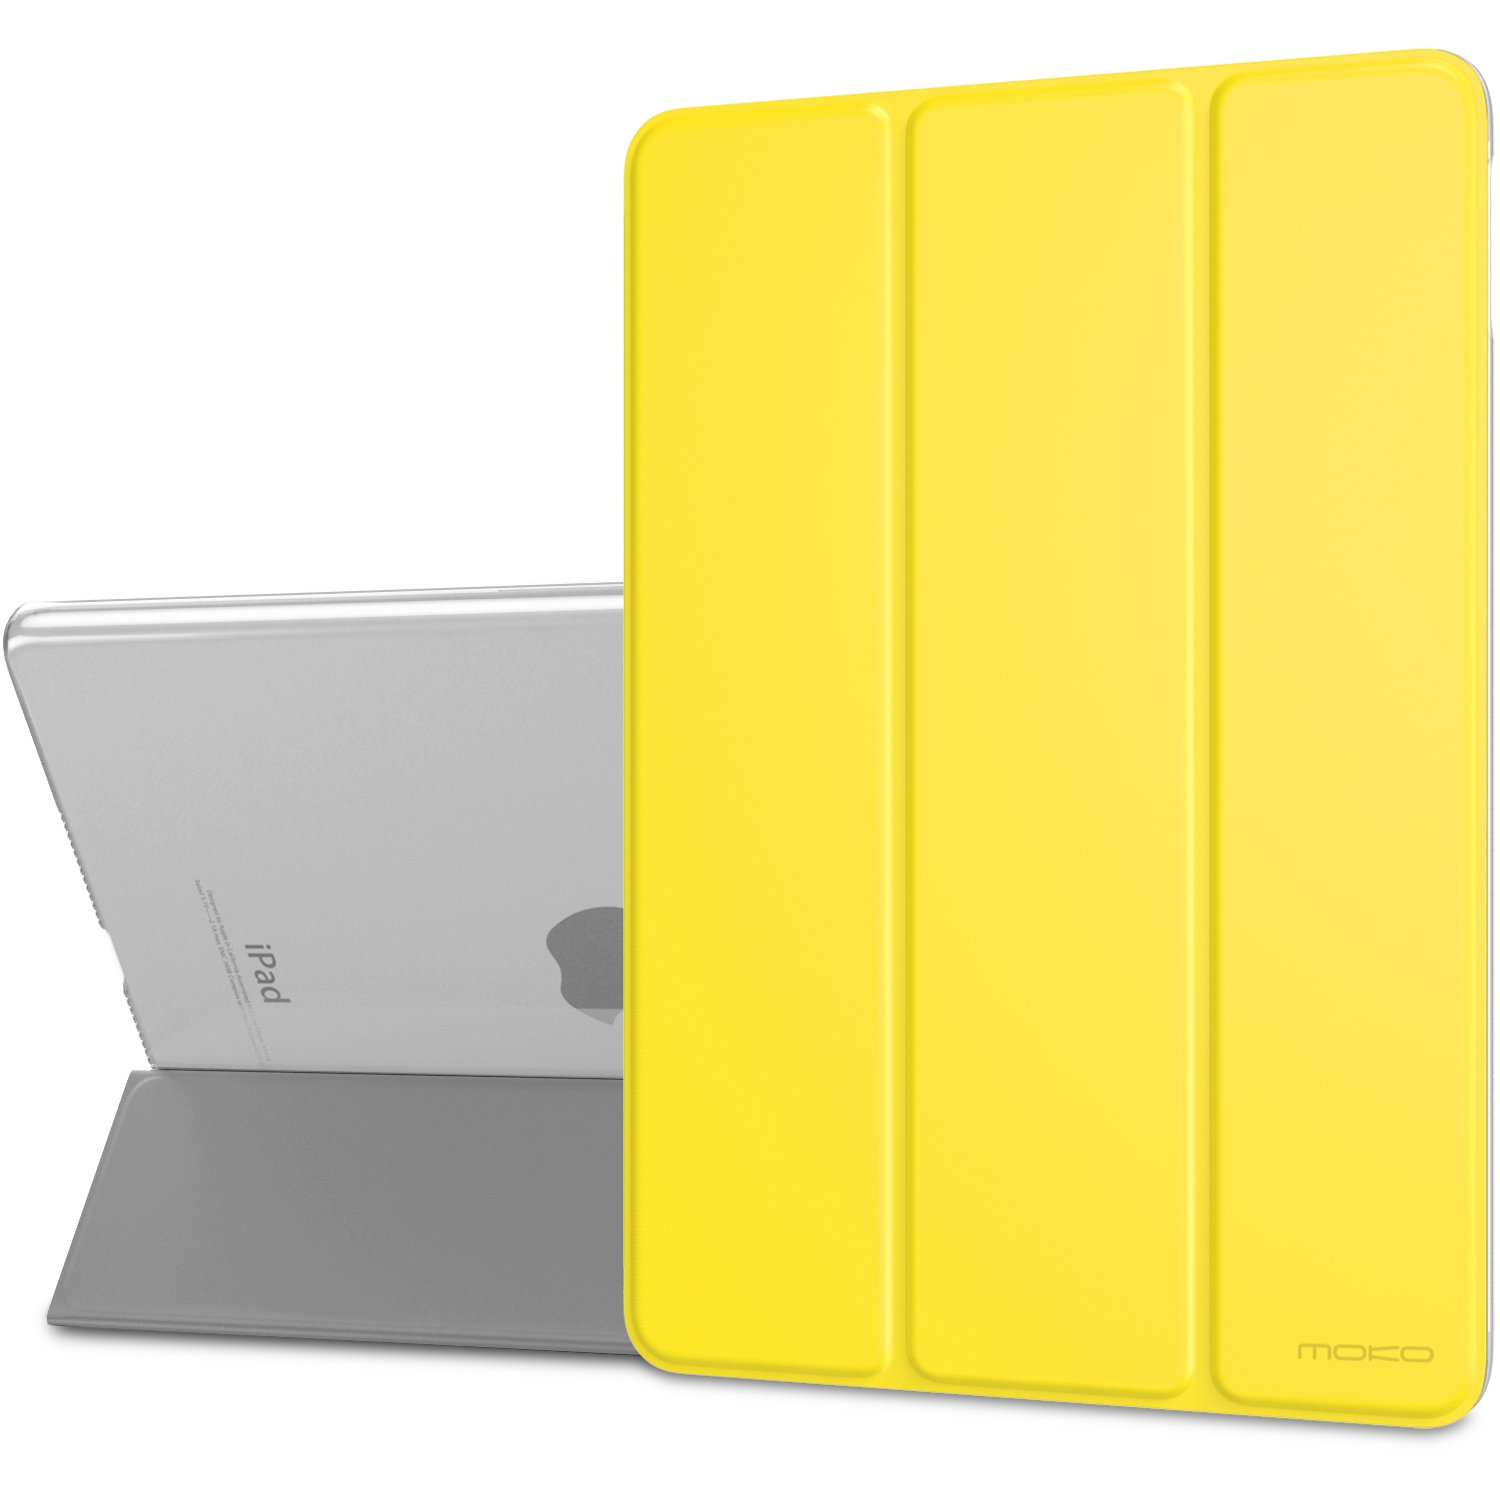 """MoKo Case Fit New iPad Air (3rd Generation) 10.5"""" 2019/iPad Pro 10.5 2017 - Slim Lightweight Smart Shell Stand Cover with Translucent Frosted Back Protector - Lemon Yellow (Auto Wake/Sleep)"""